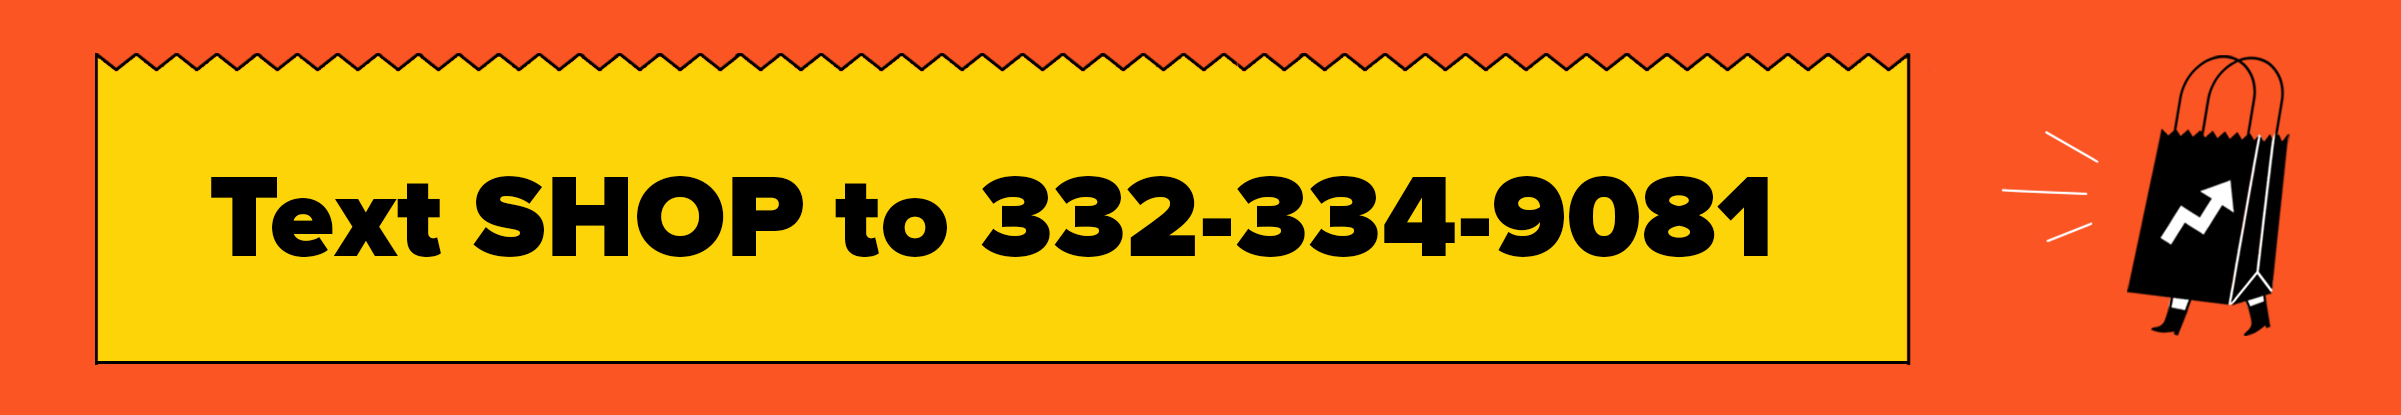 banner that says text shop to 332-334-9081